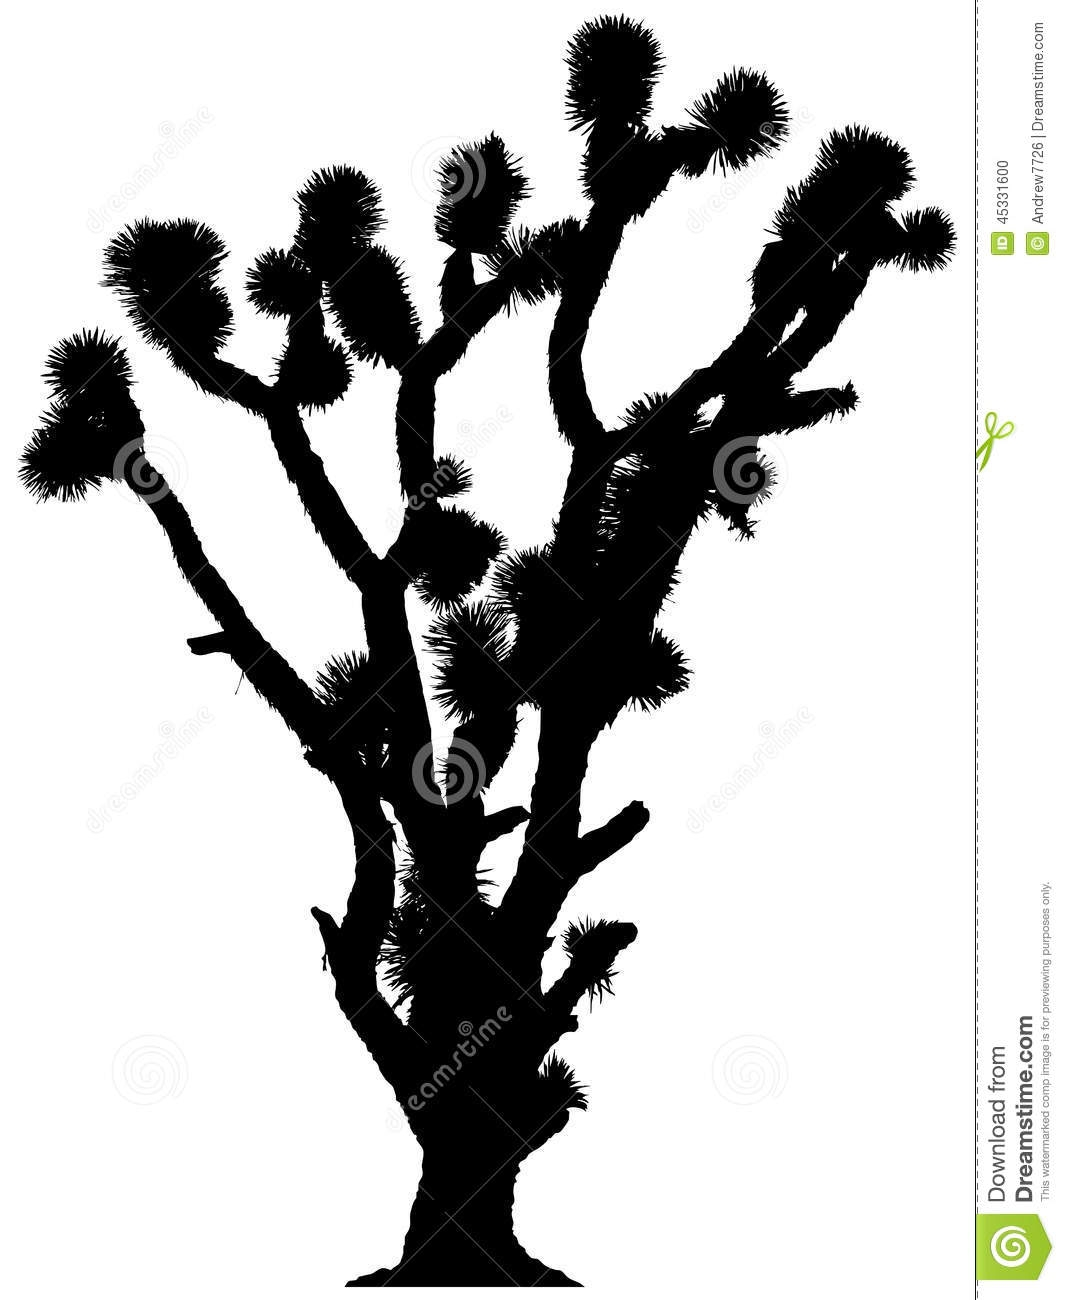 Joshua Tree clipart #16, Download drawings